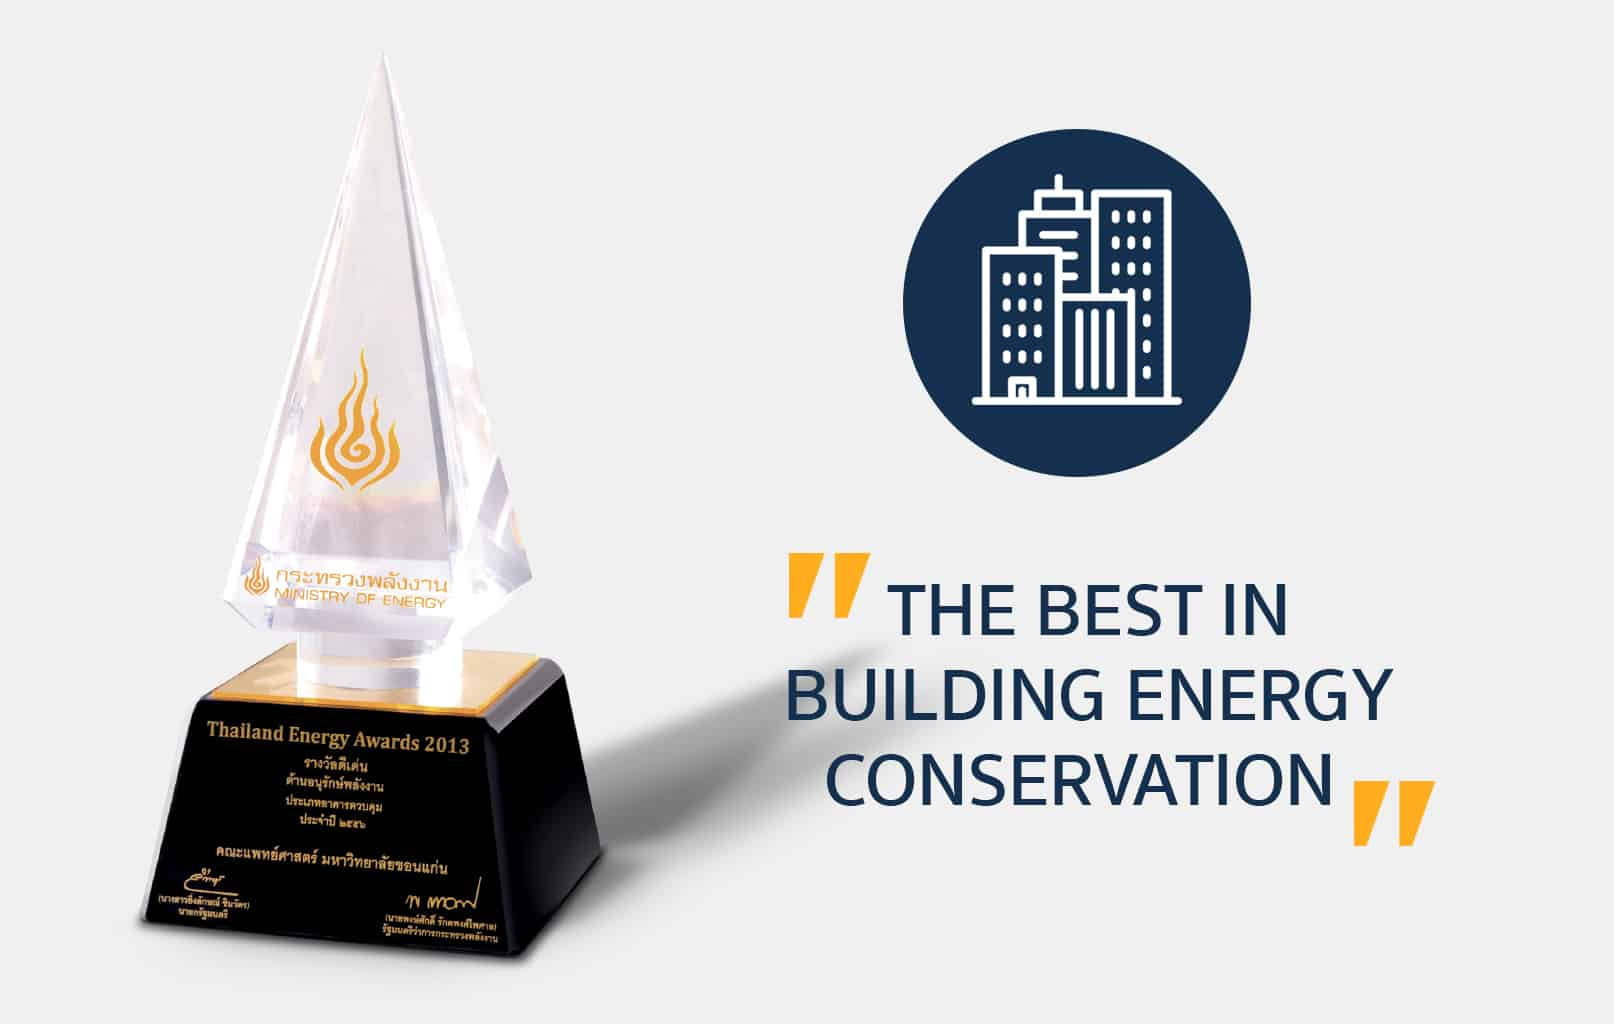 THE BEST IN BUILDING ENERGY CONSERVATION(eng)